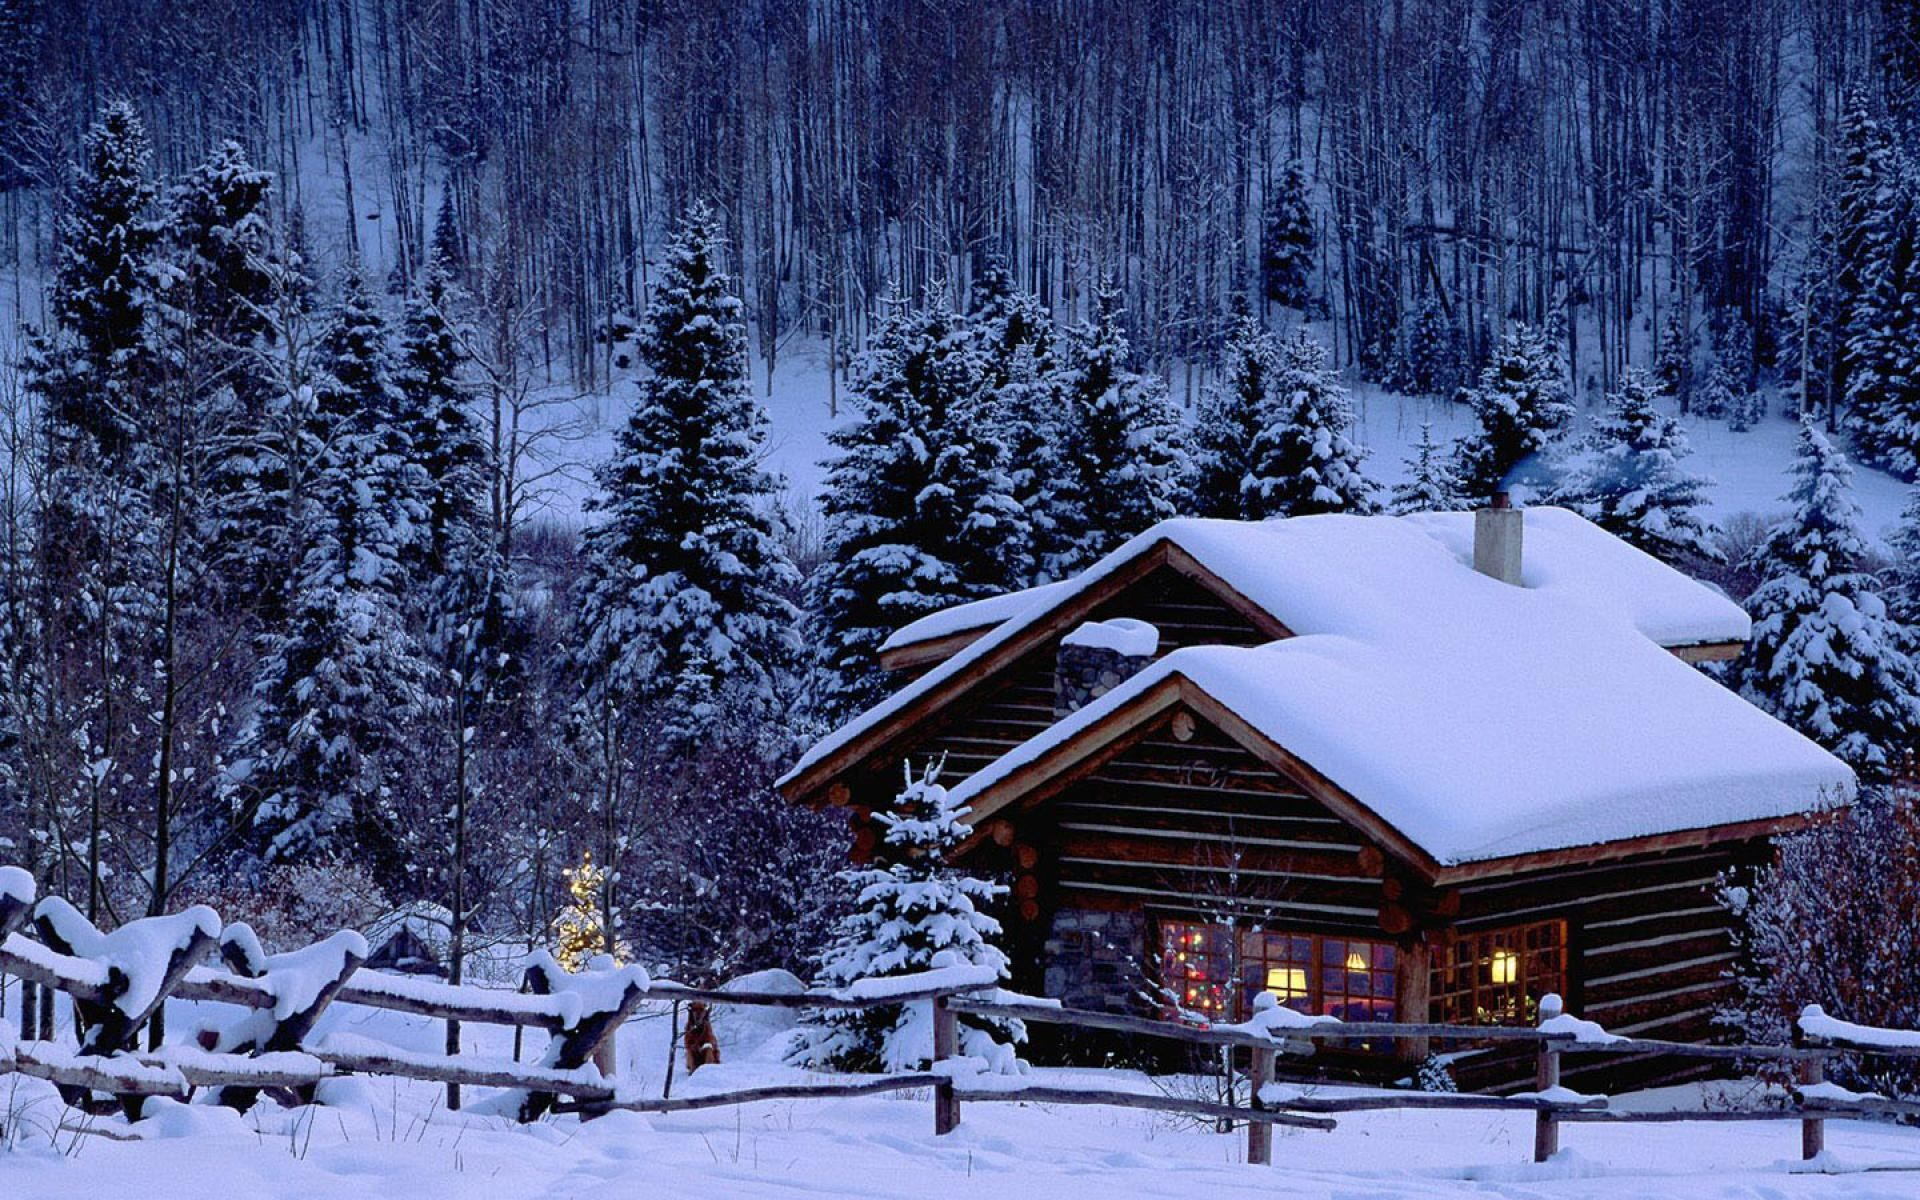 Christmas Scenes Images.Snowy Christmas Scenes Wallpaper 48 Images